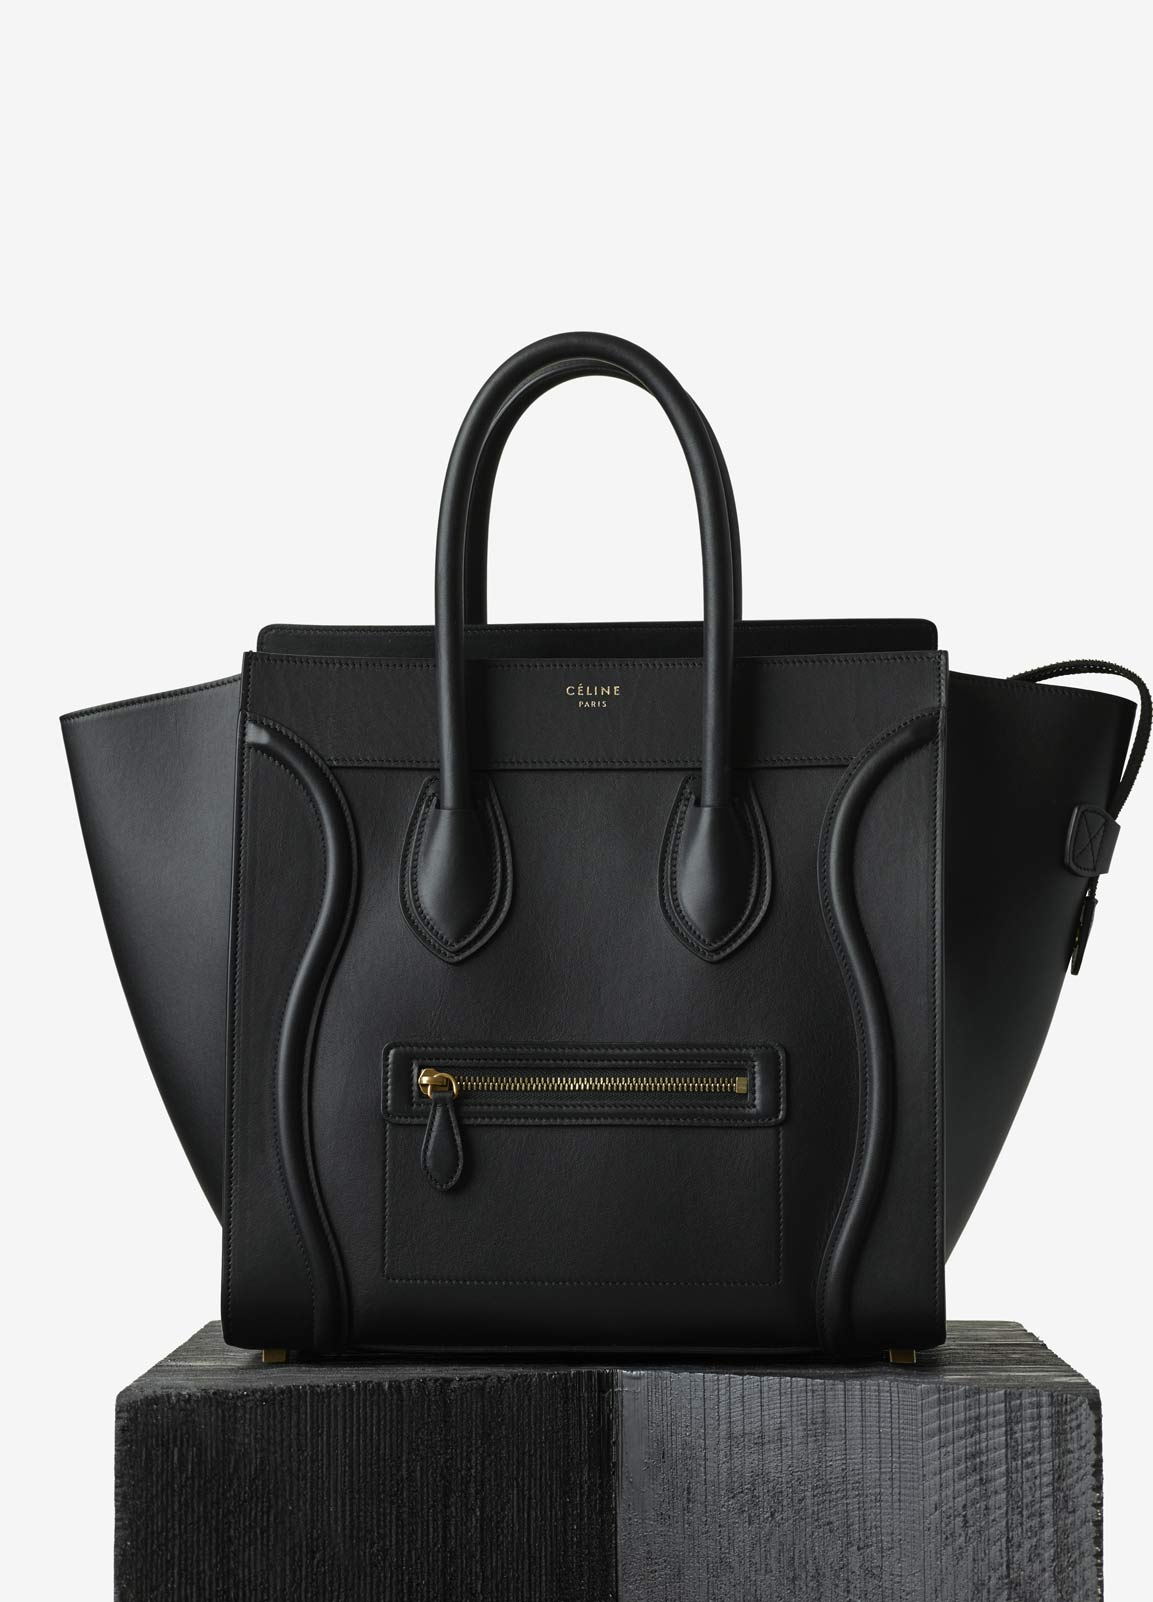 celine luggage tote price - Celine Pre-Fall 2015 Bag Collection featuring new Sangle Hobo ...